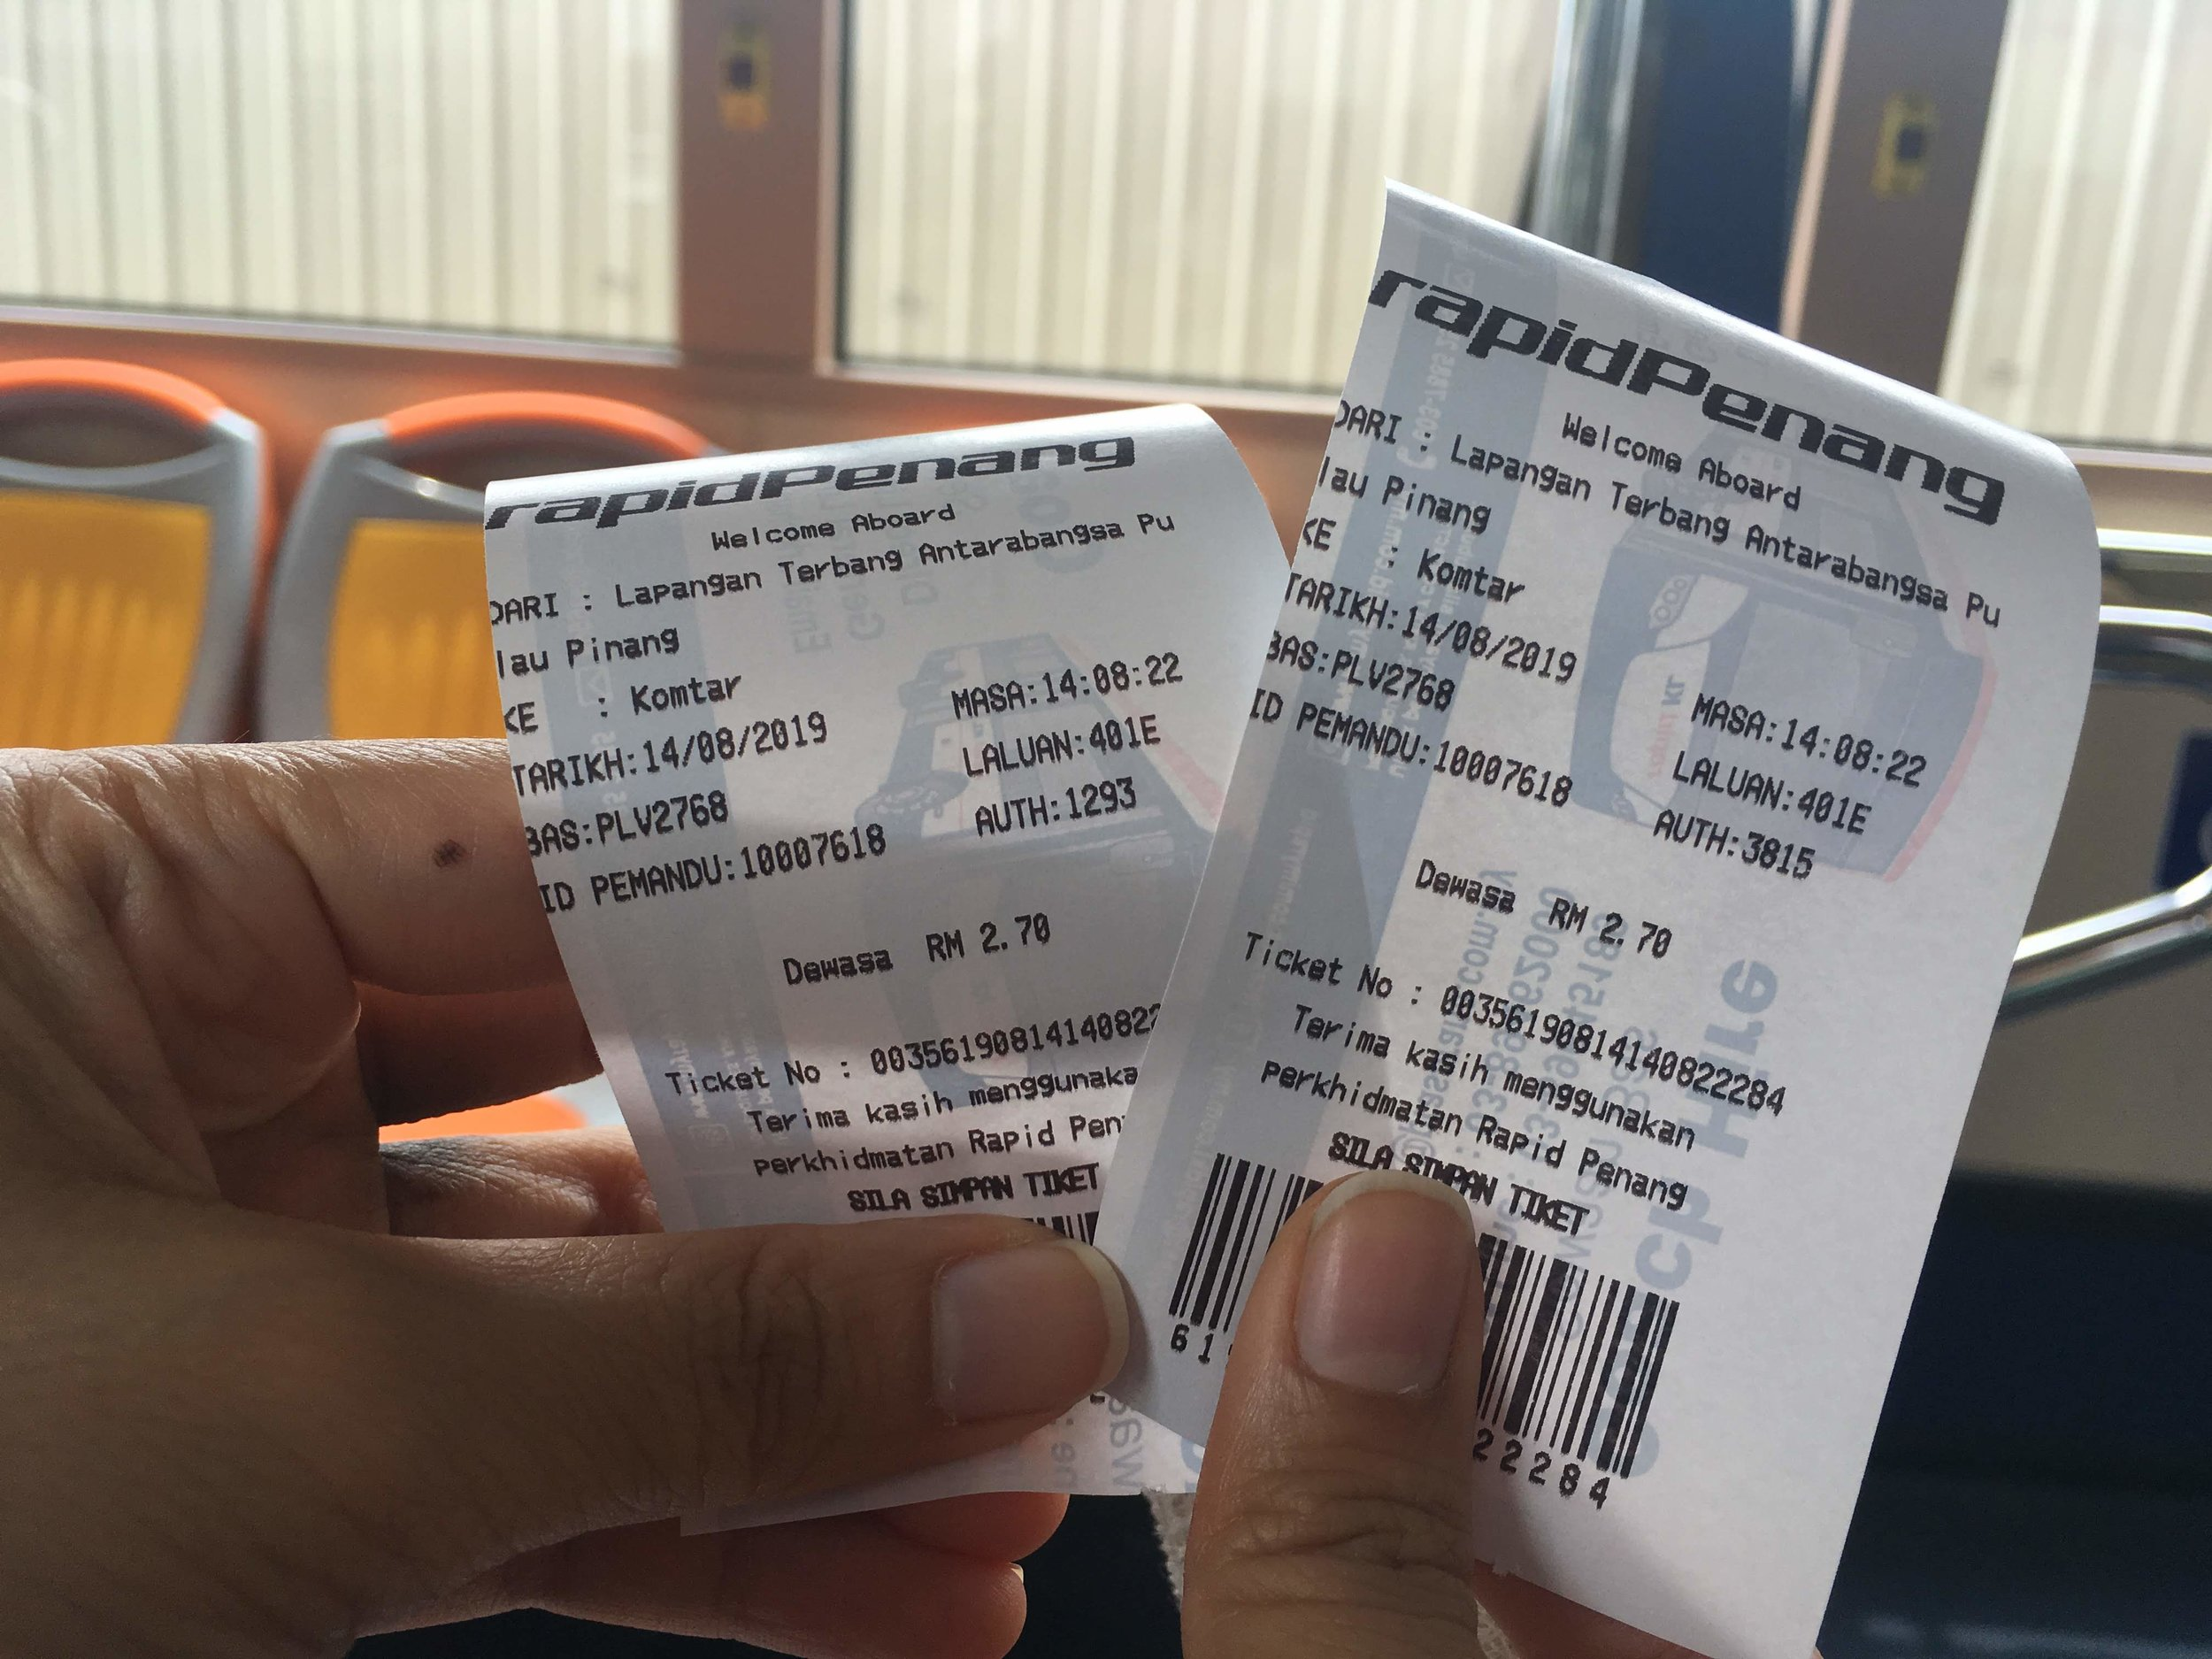 ticket on the Rapid Penang bus from Penang International Airport to Georgetown, Penang, Malaysia